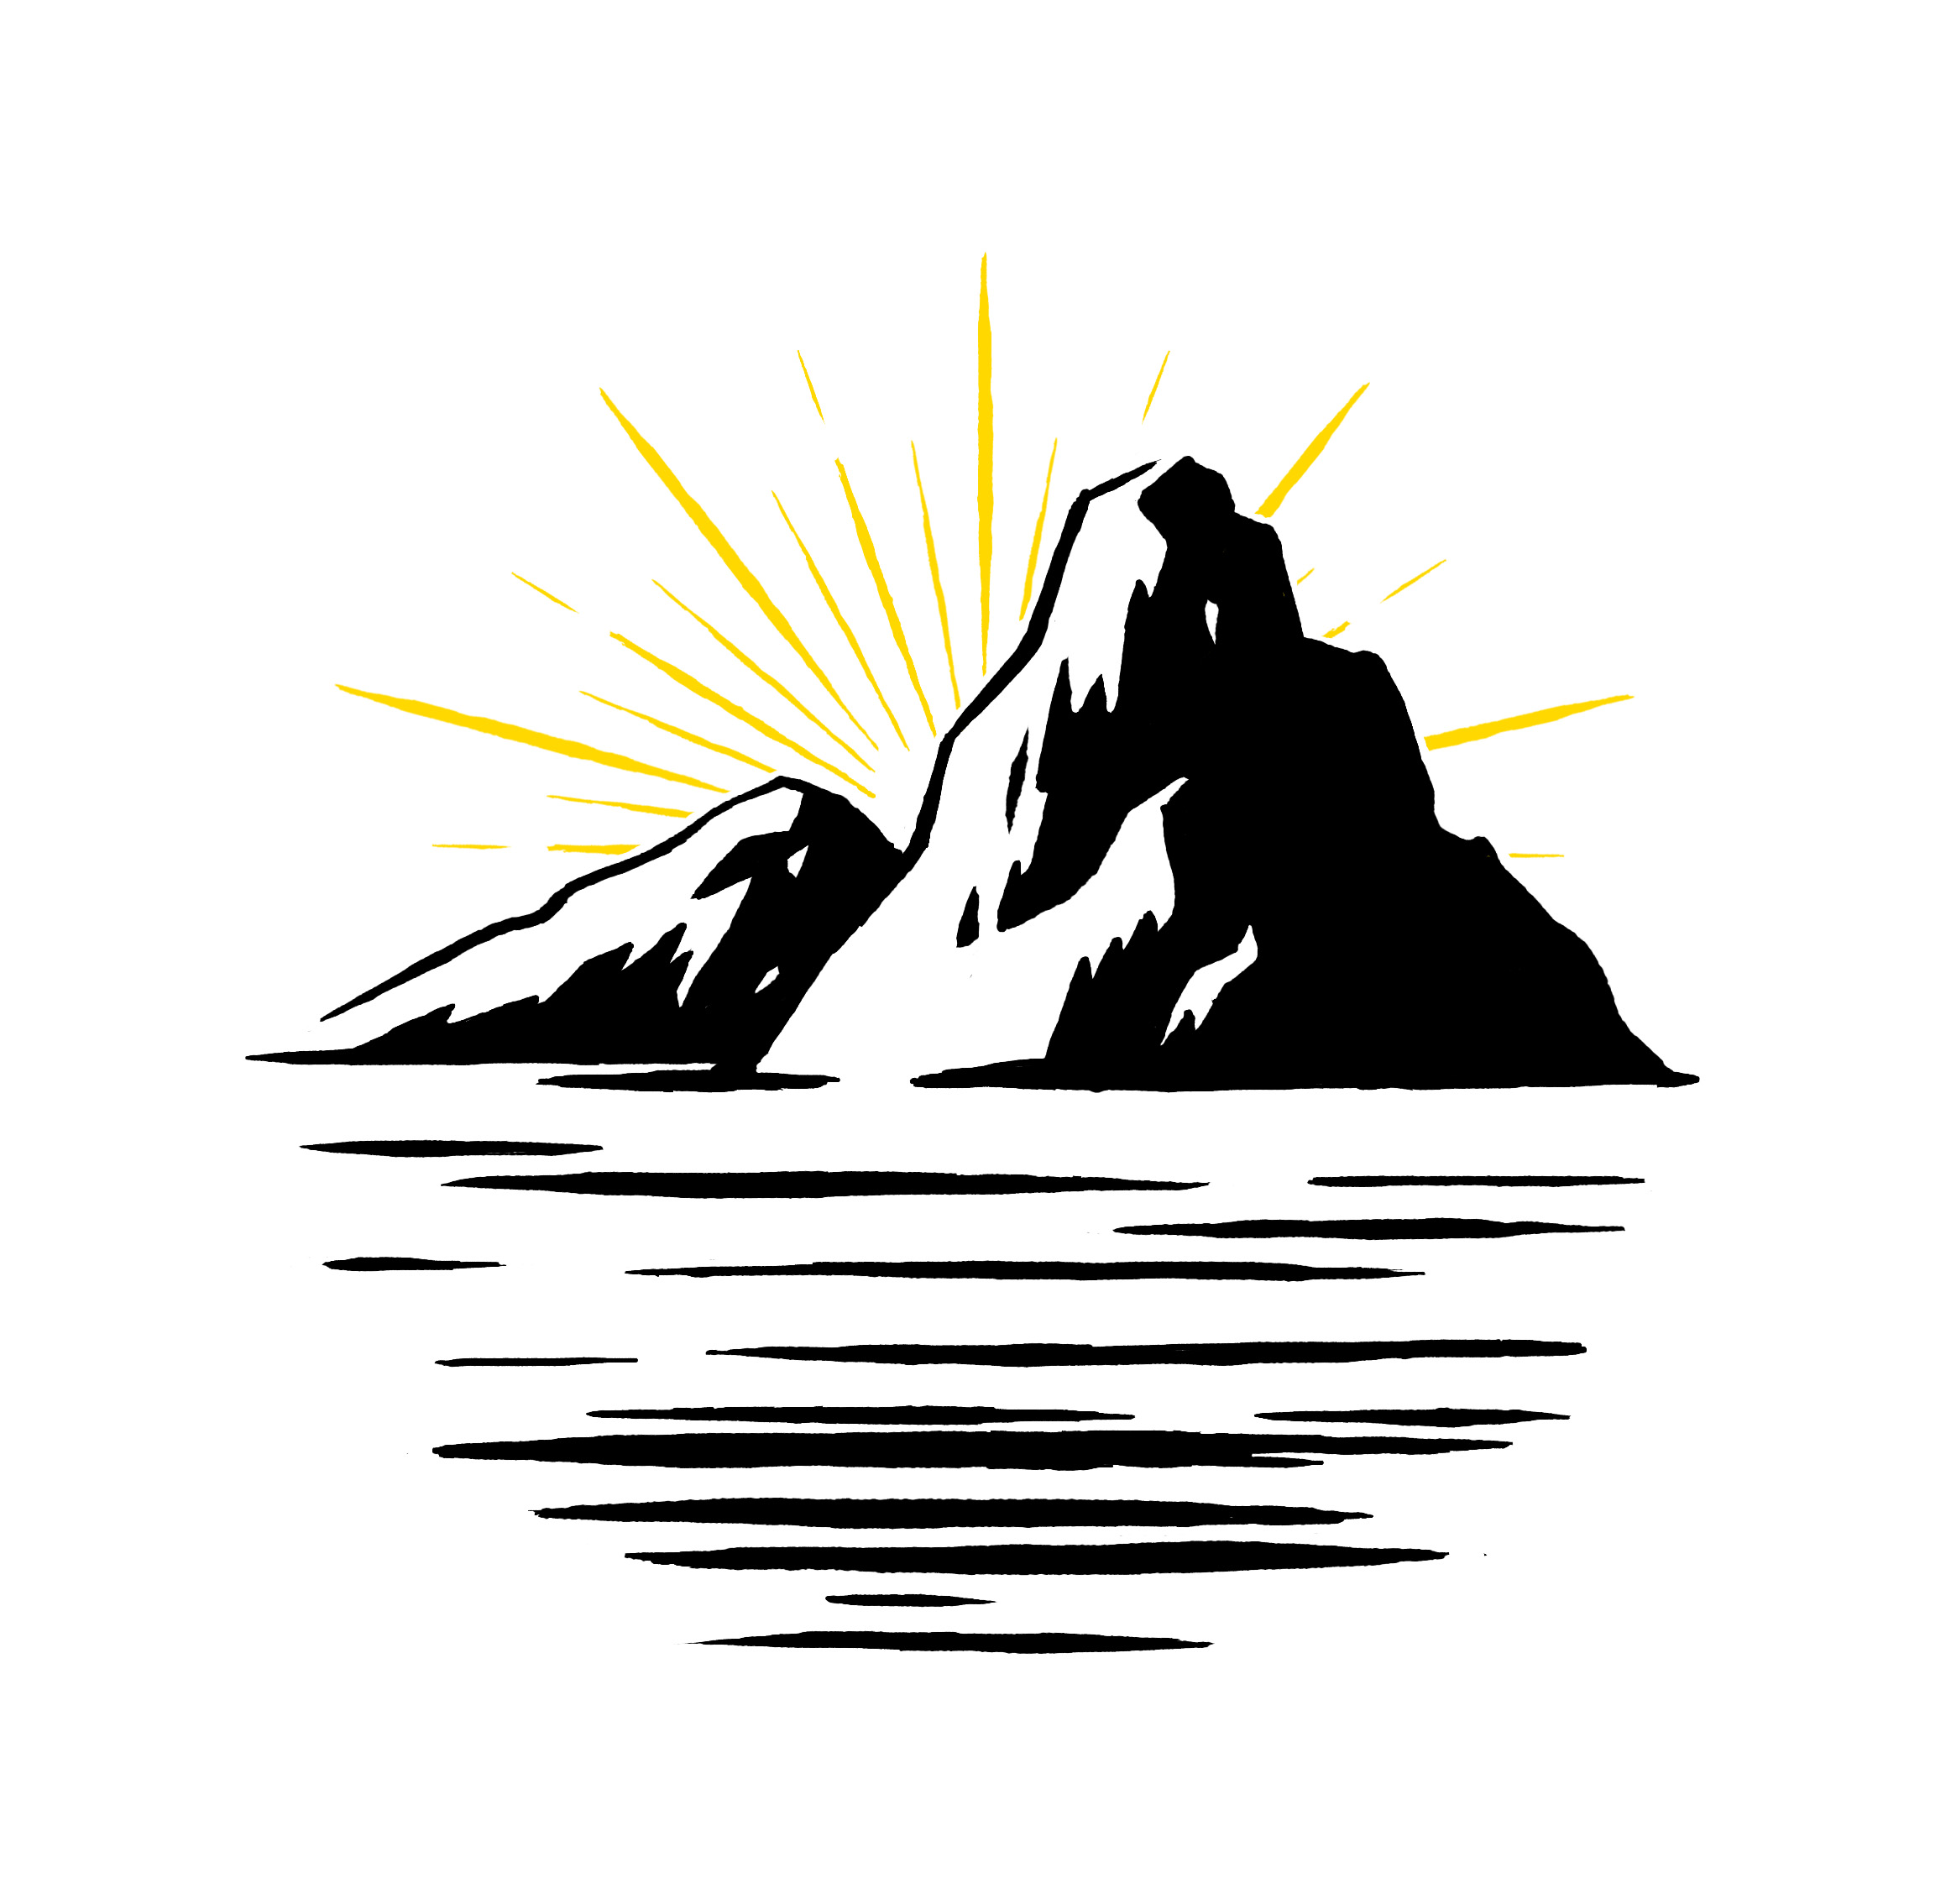 Style test/sketch for the iconic mountains